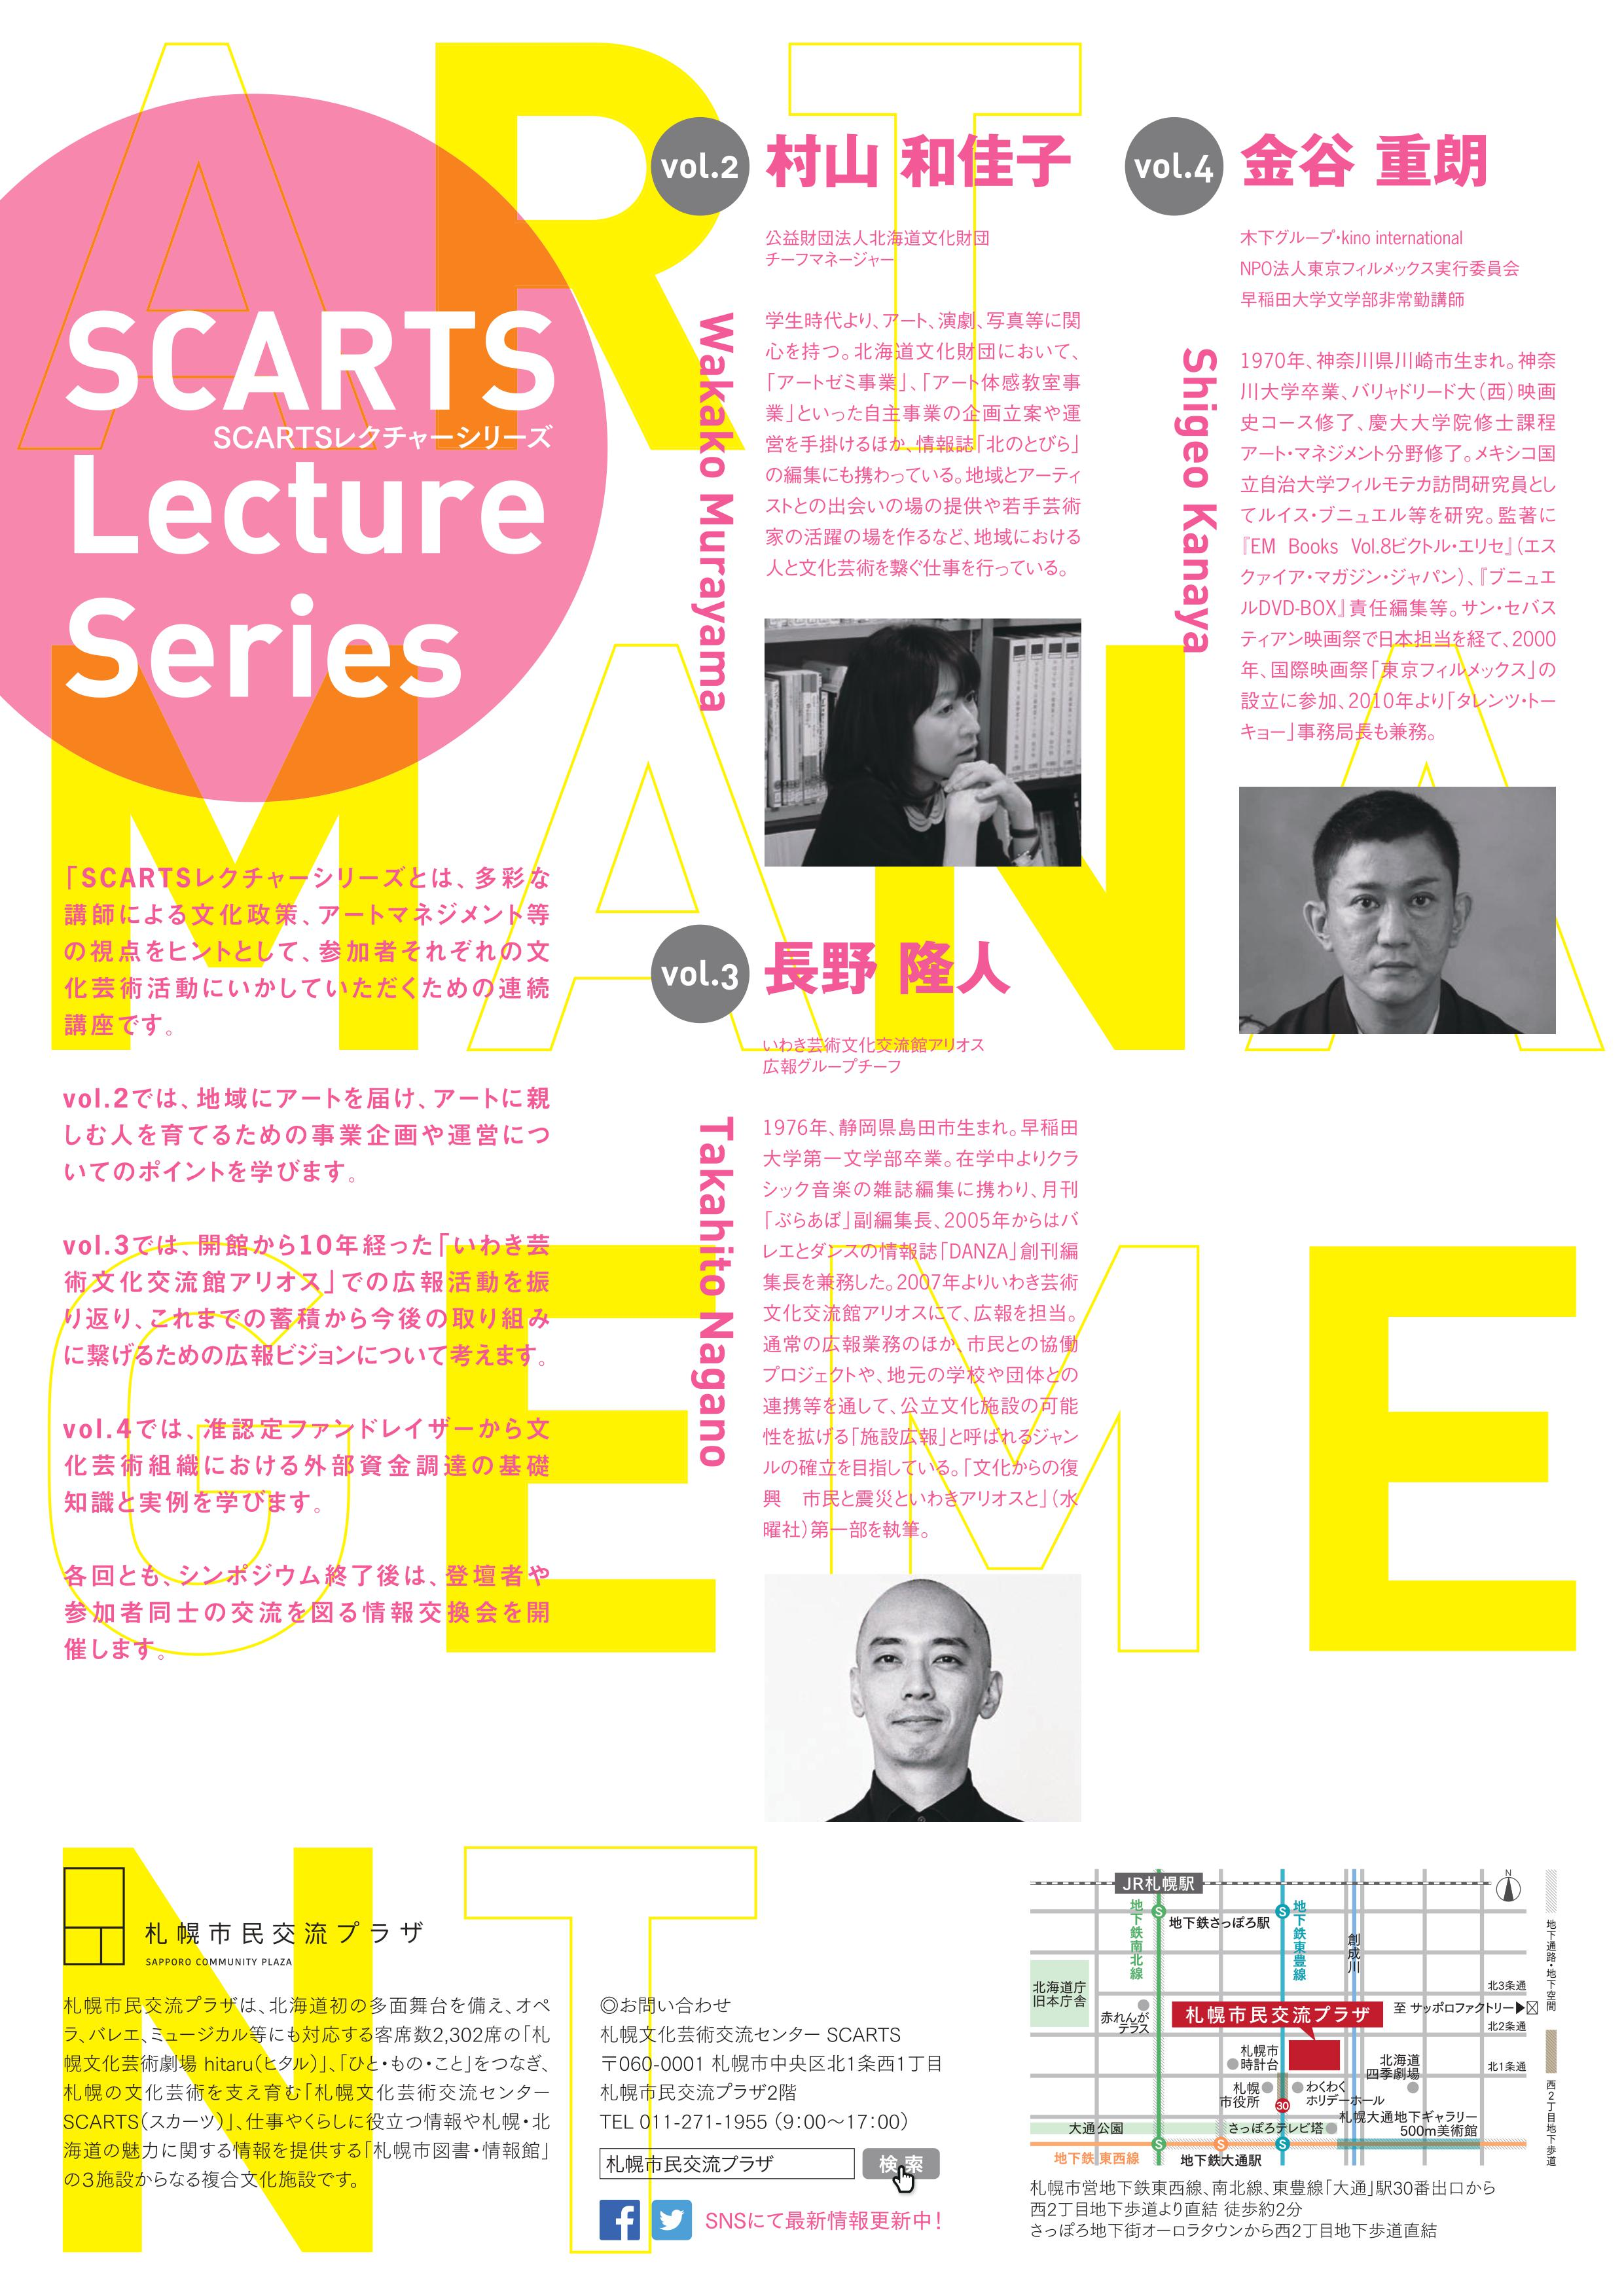 SCARTS Lecture Series Vol. 3 The Future-oriented PR Strategy of a Public Cultural Facility image 3